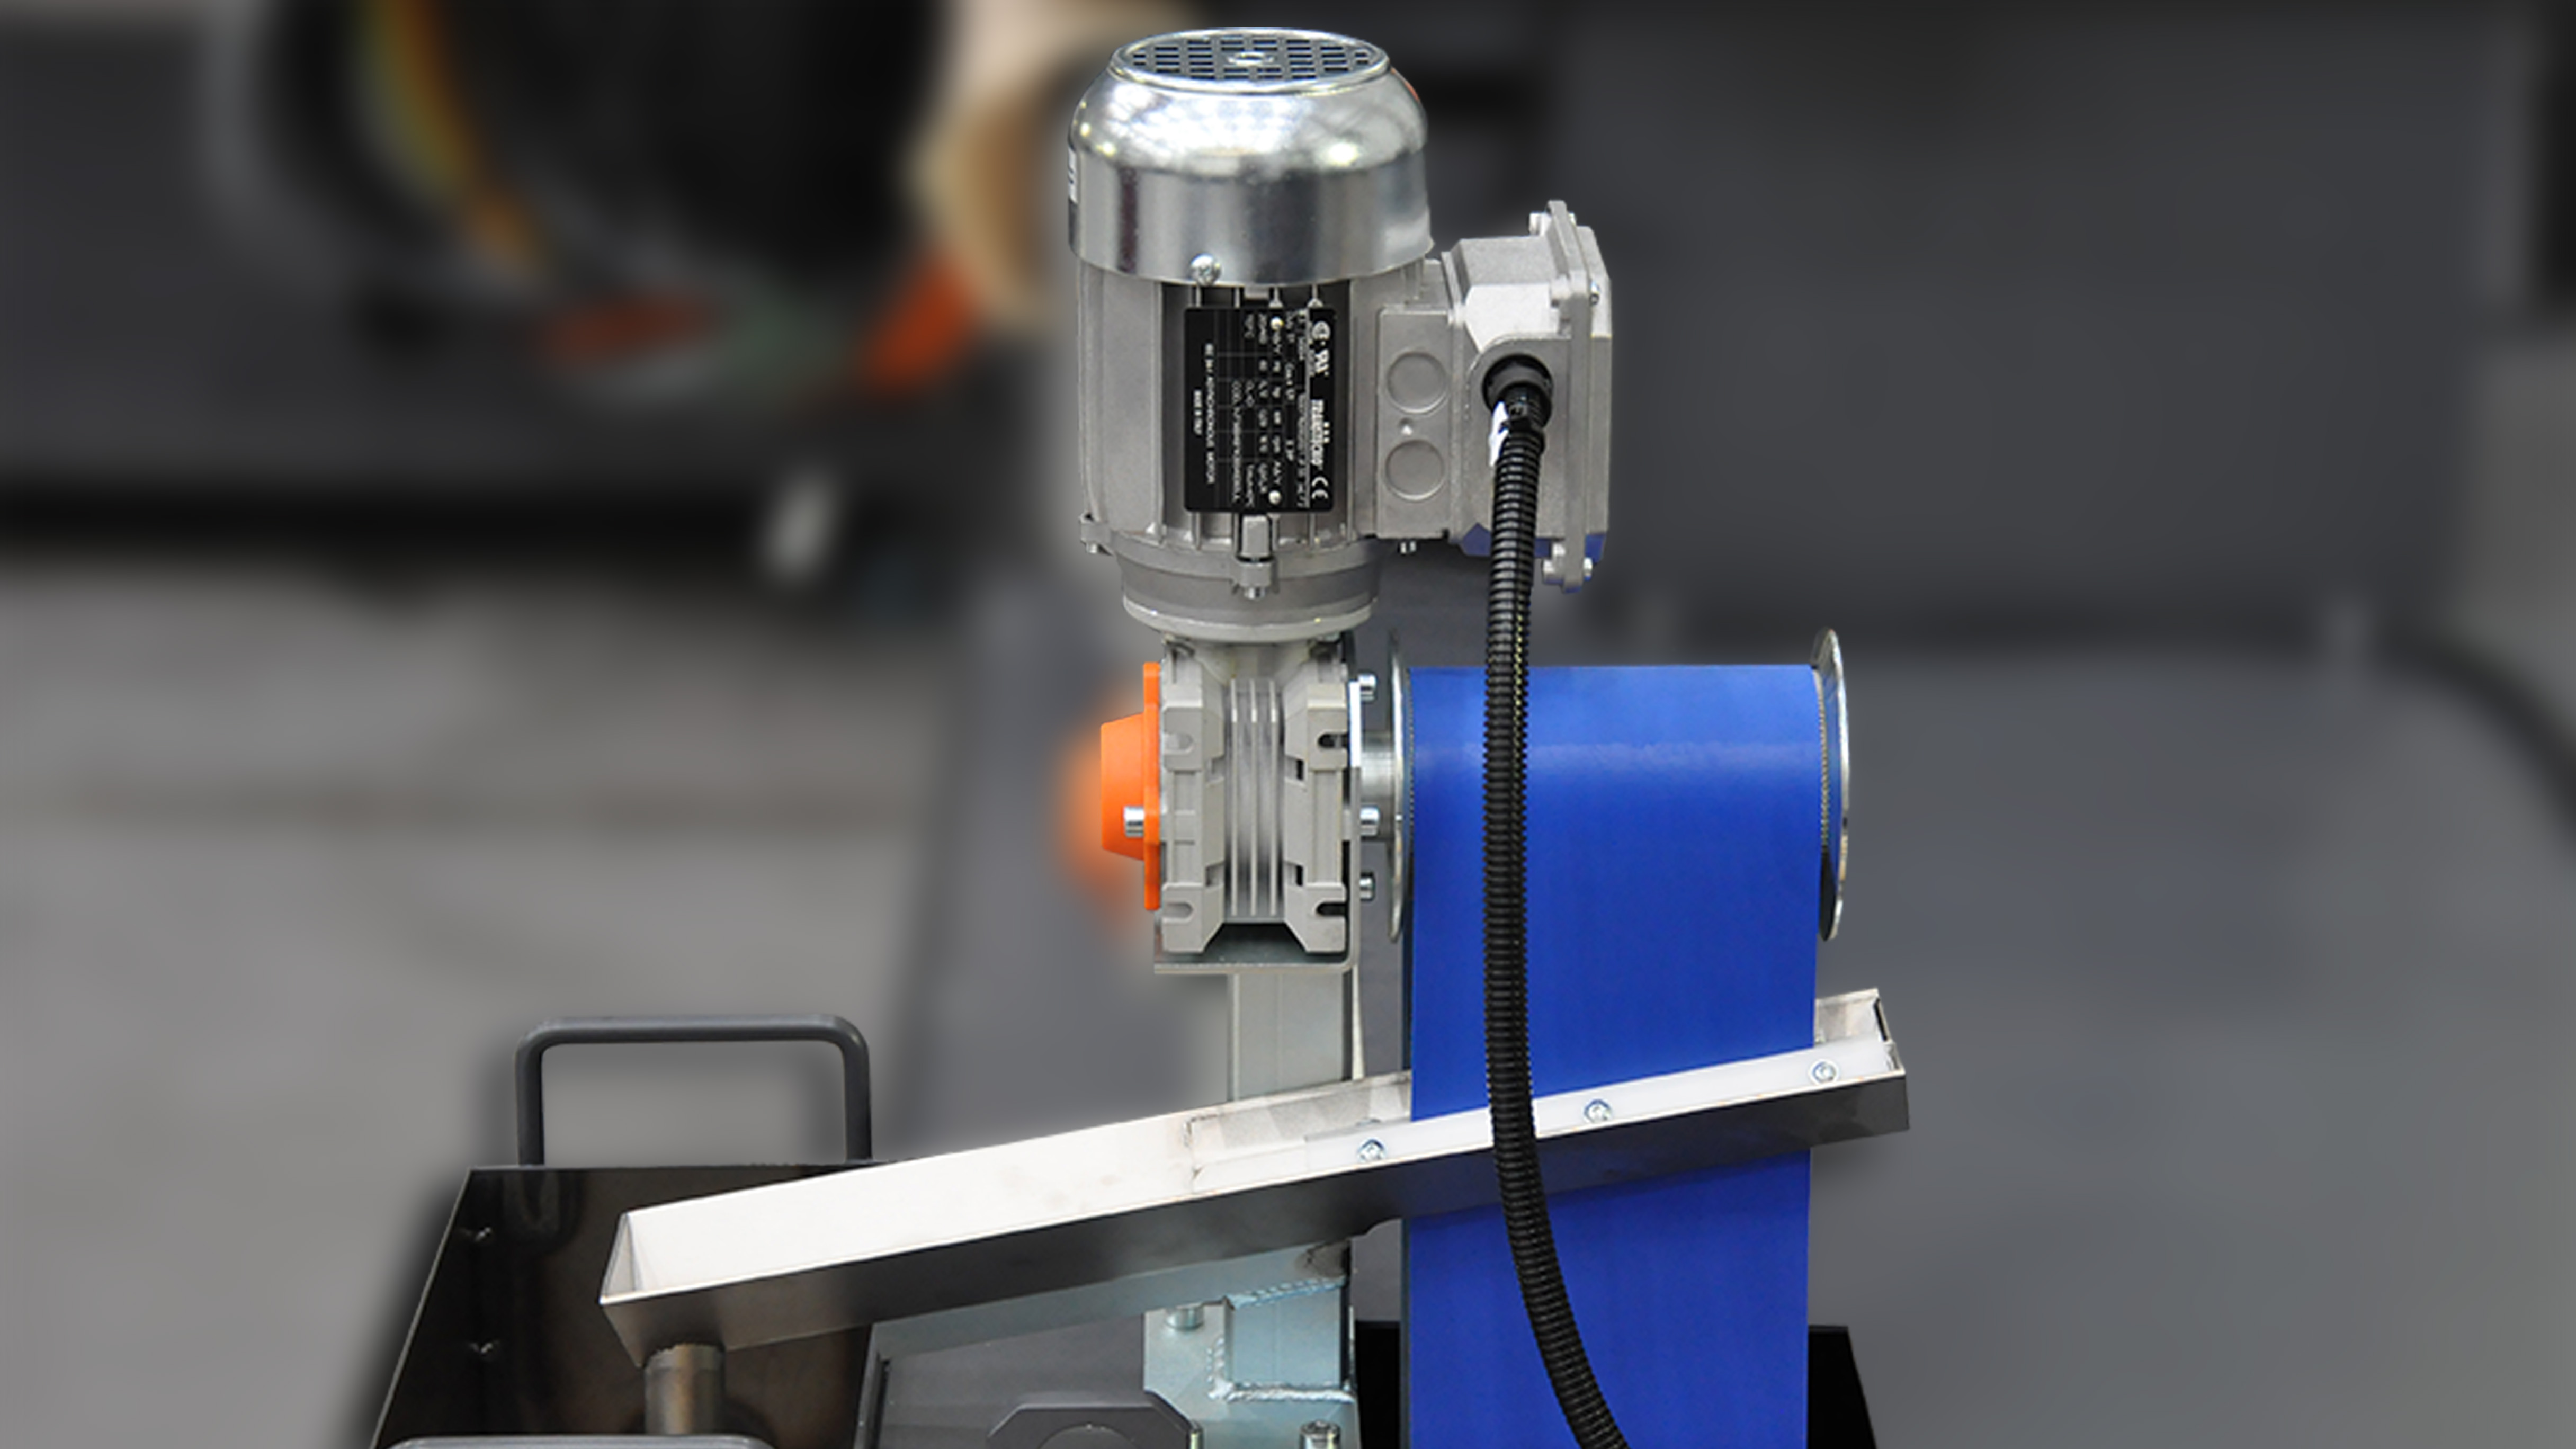 Cooling of Tools with Sleeve Filtration - Image2